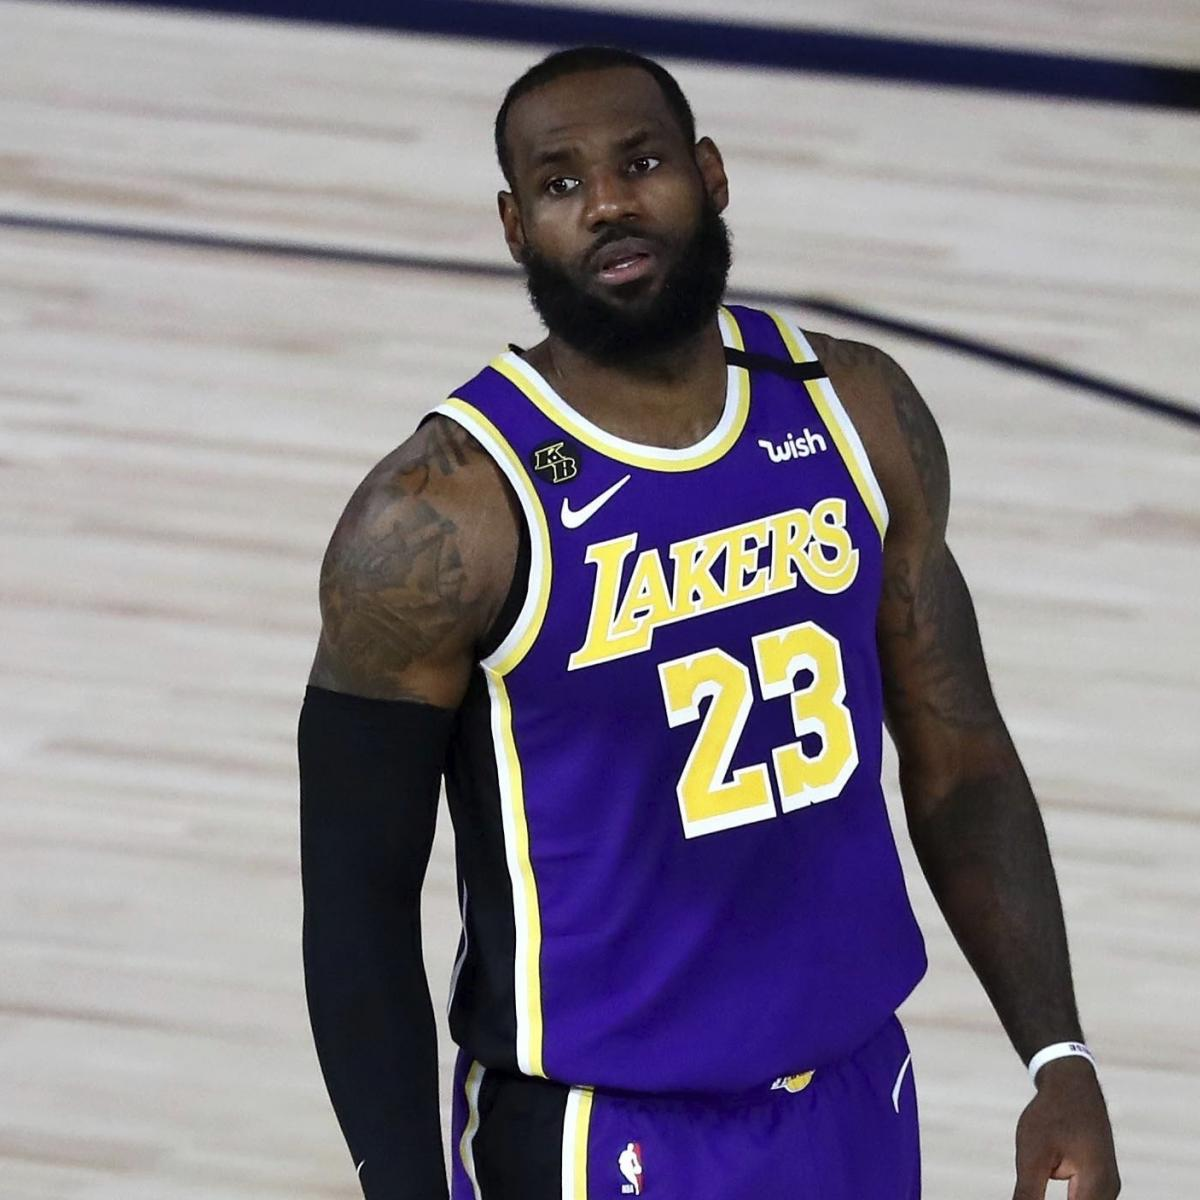 NBA Exec: 'Nobody Is Safe in This Environment' After LeBron James, Lakers Losses